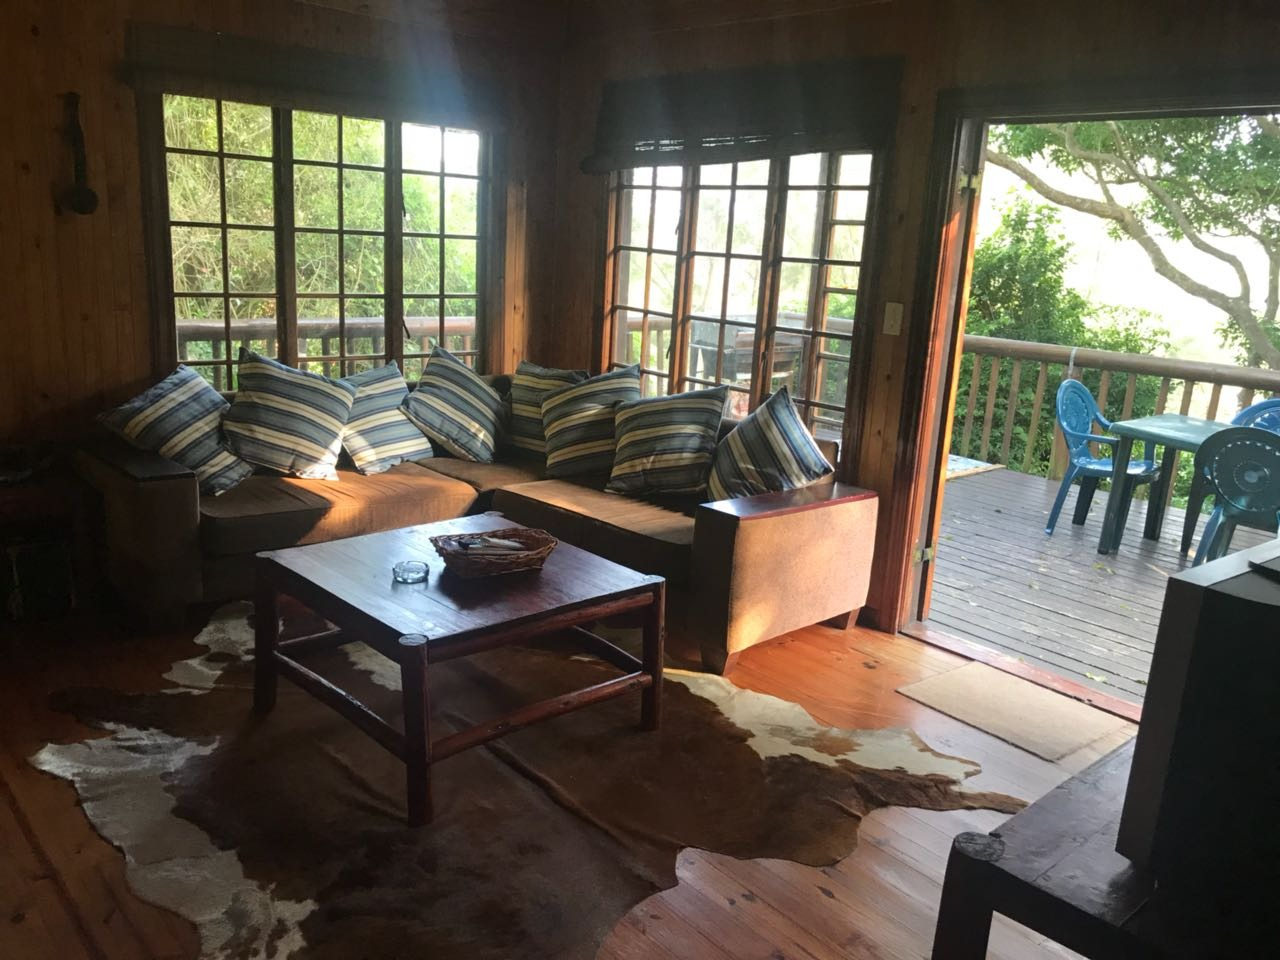 2 Bedroom House For Sale in Ponta Do Ouoro Central